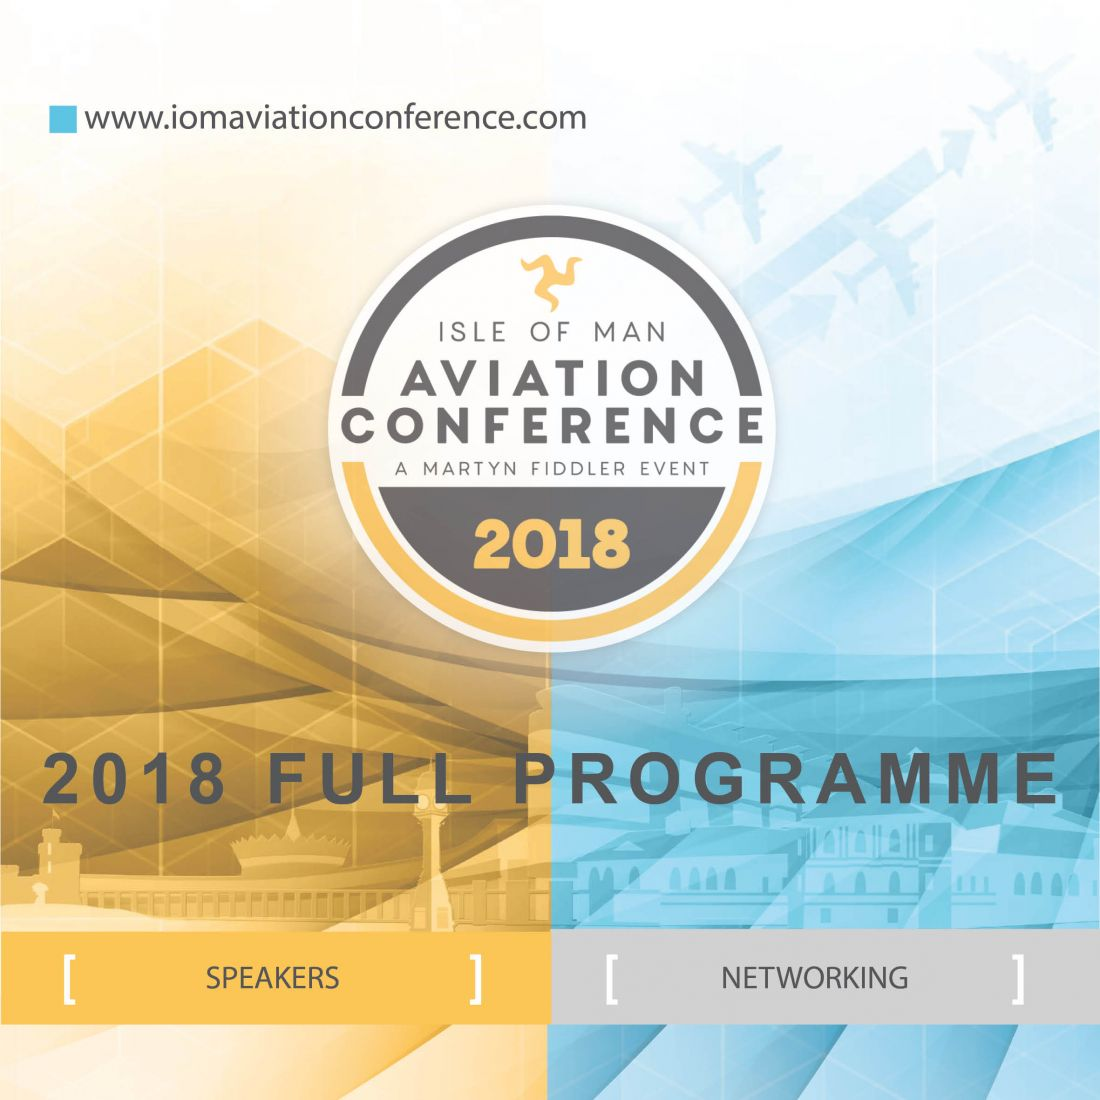 Isle of Man Aviation Conference 2018: Full Programme